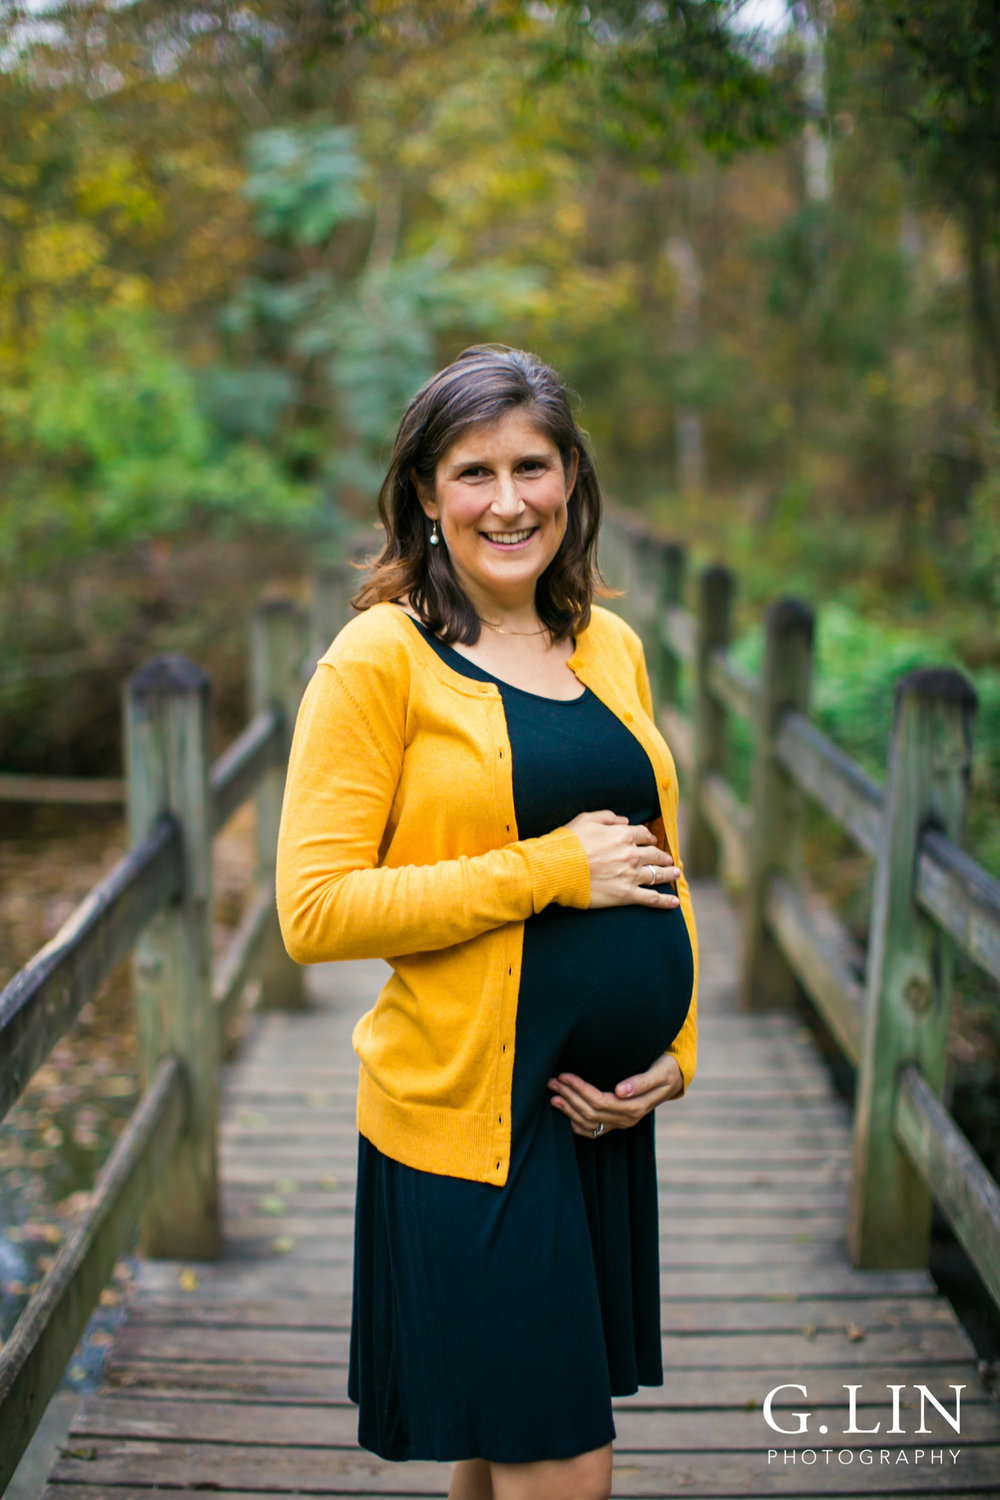 Durham Family Photography | G. Lin Photography | Maternity photo on the bridge